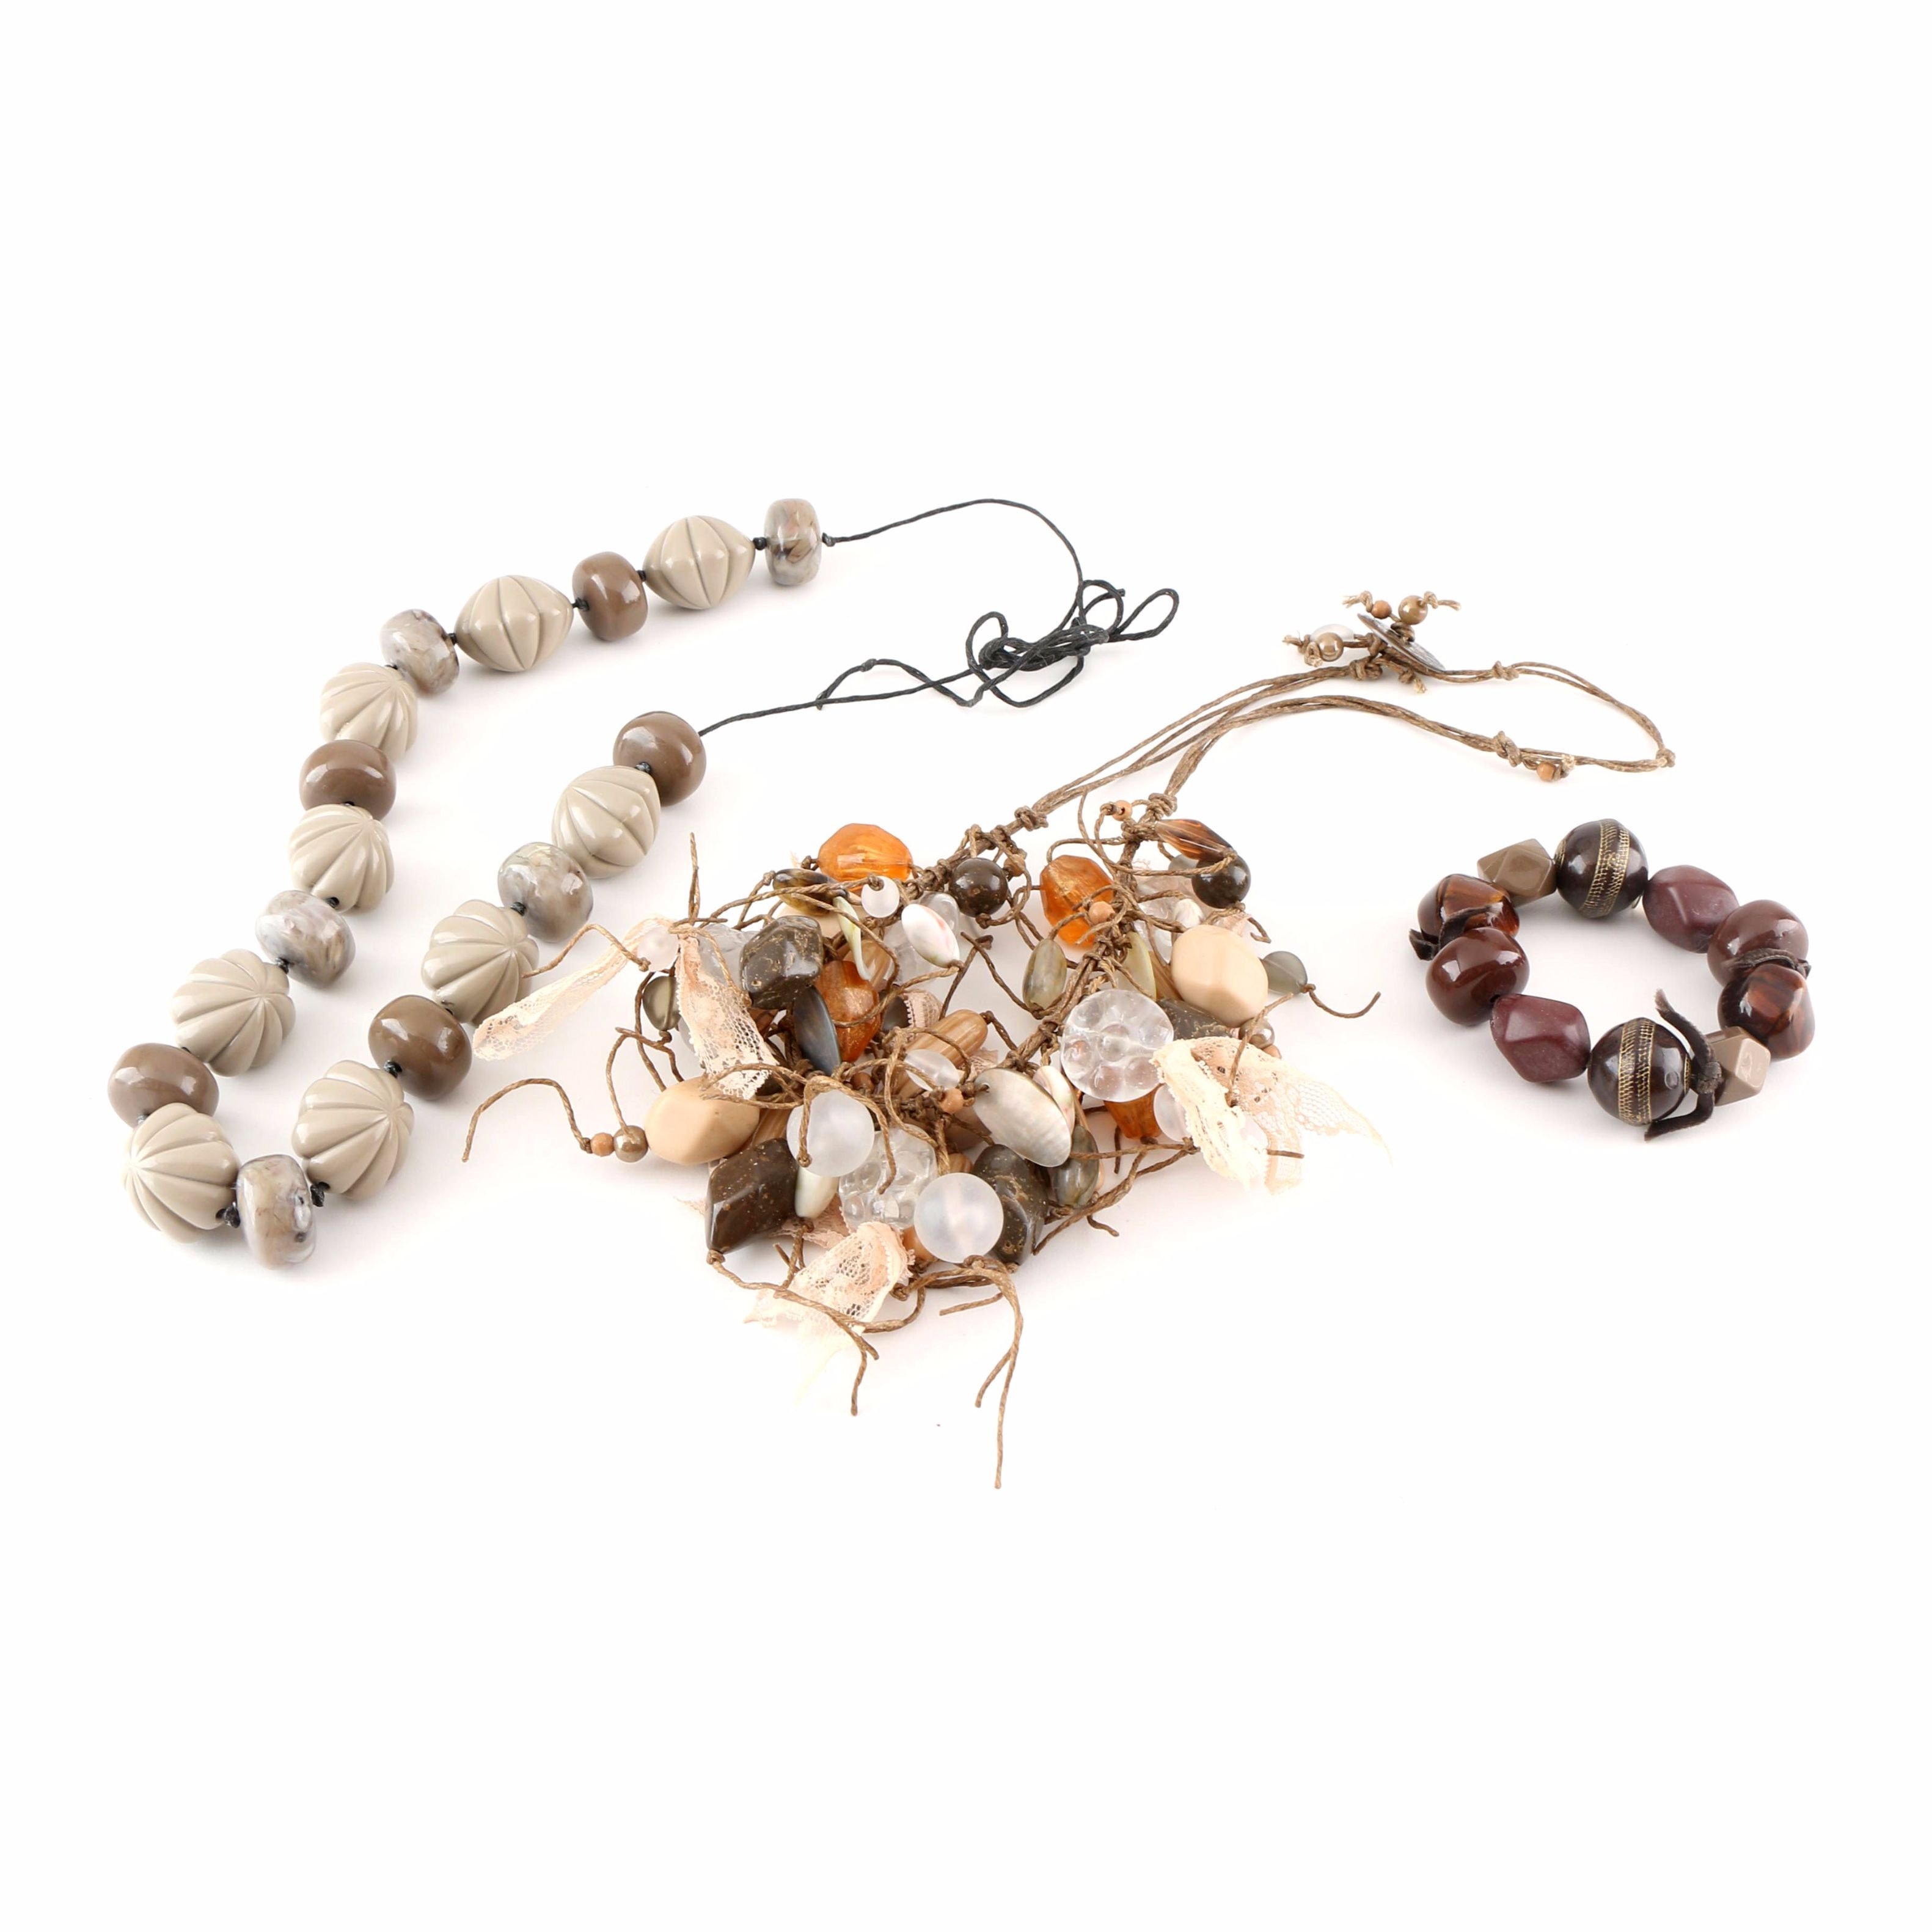 Handcrafted Earth-Tone Beaded Jewelry Including a Bracelet by Teresa Goodall